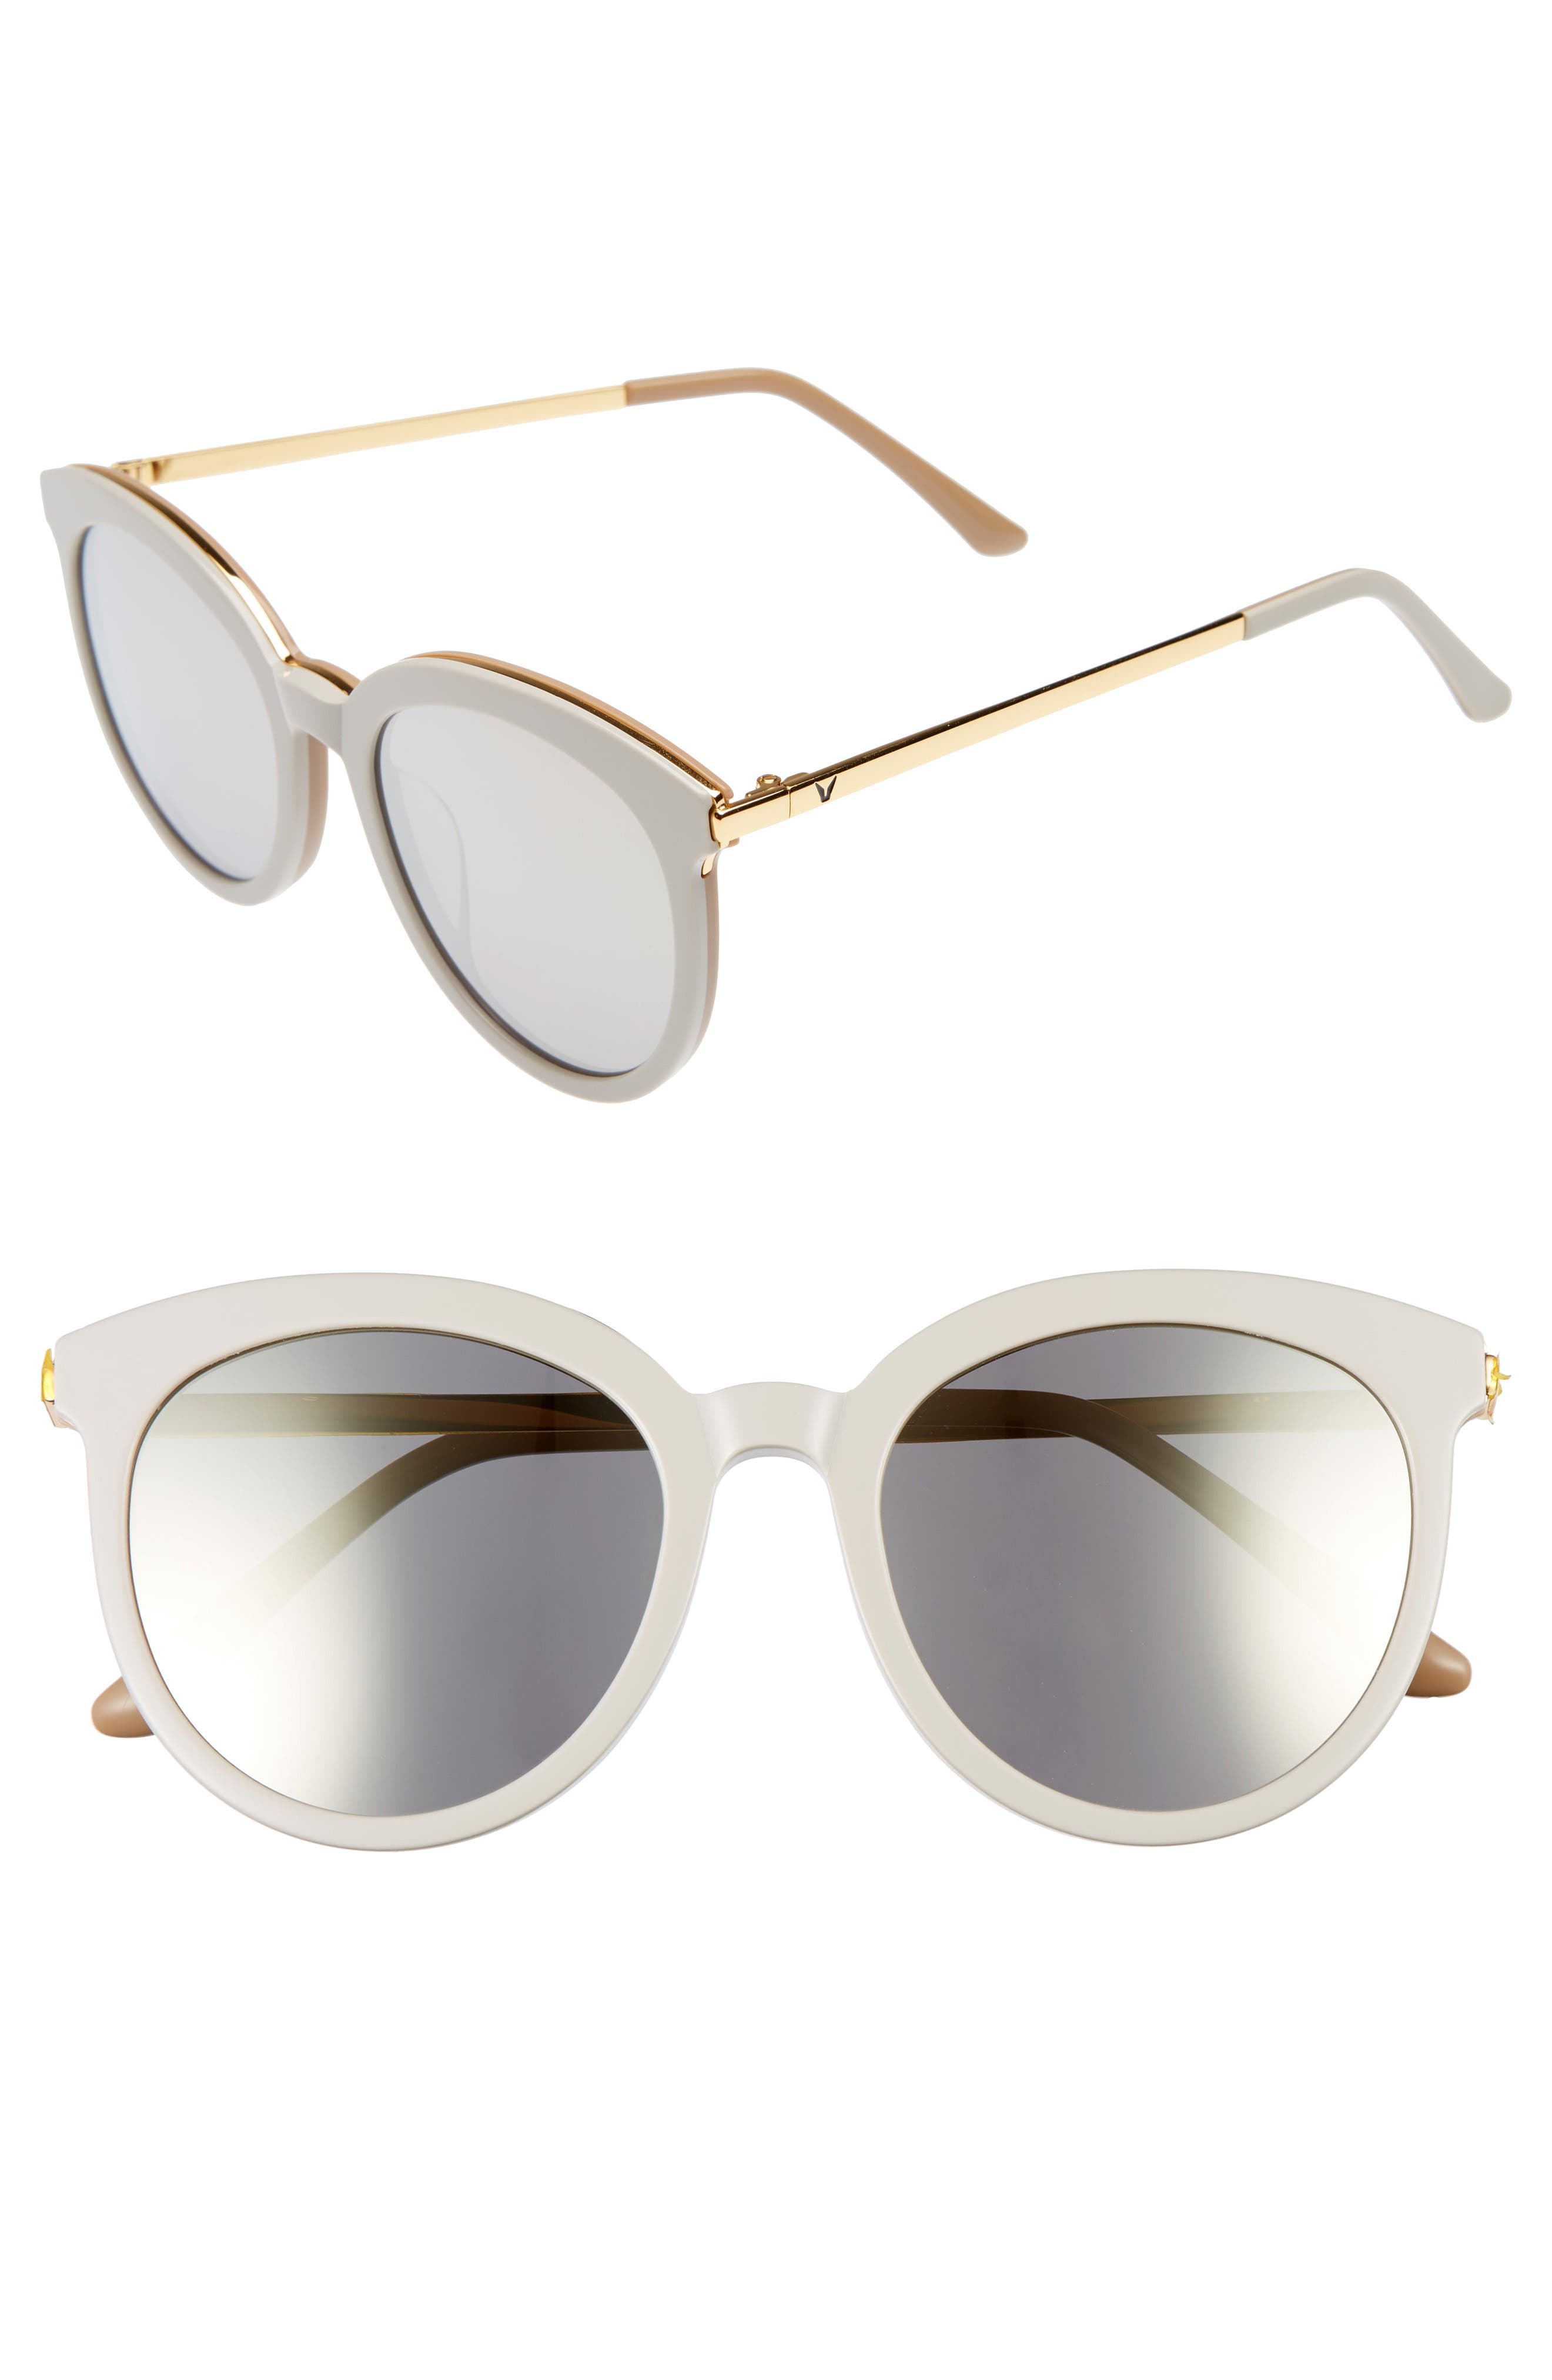 Vanilla Road 54mm Rounded Sunglasses,                         Main,                         color, Grey/ Gold